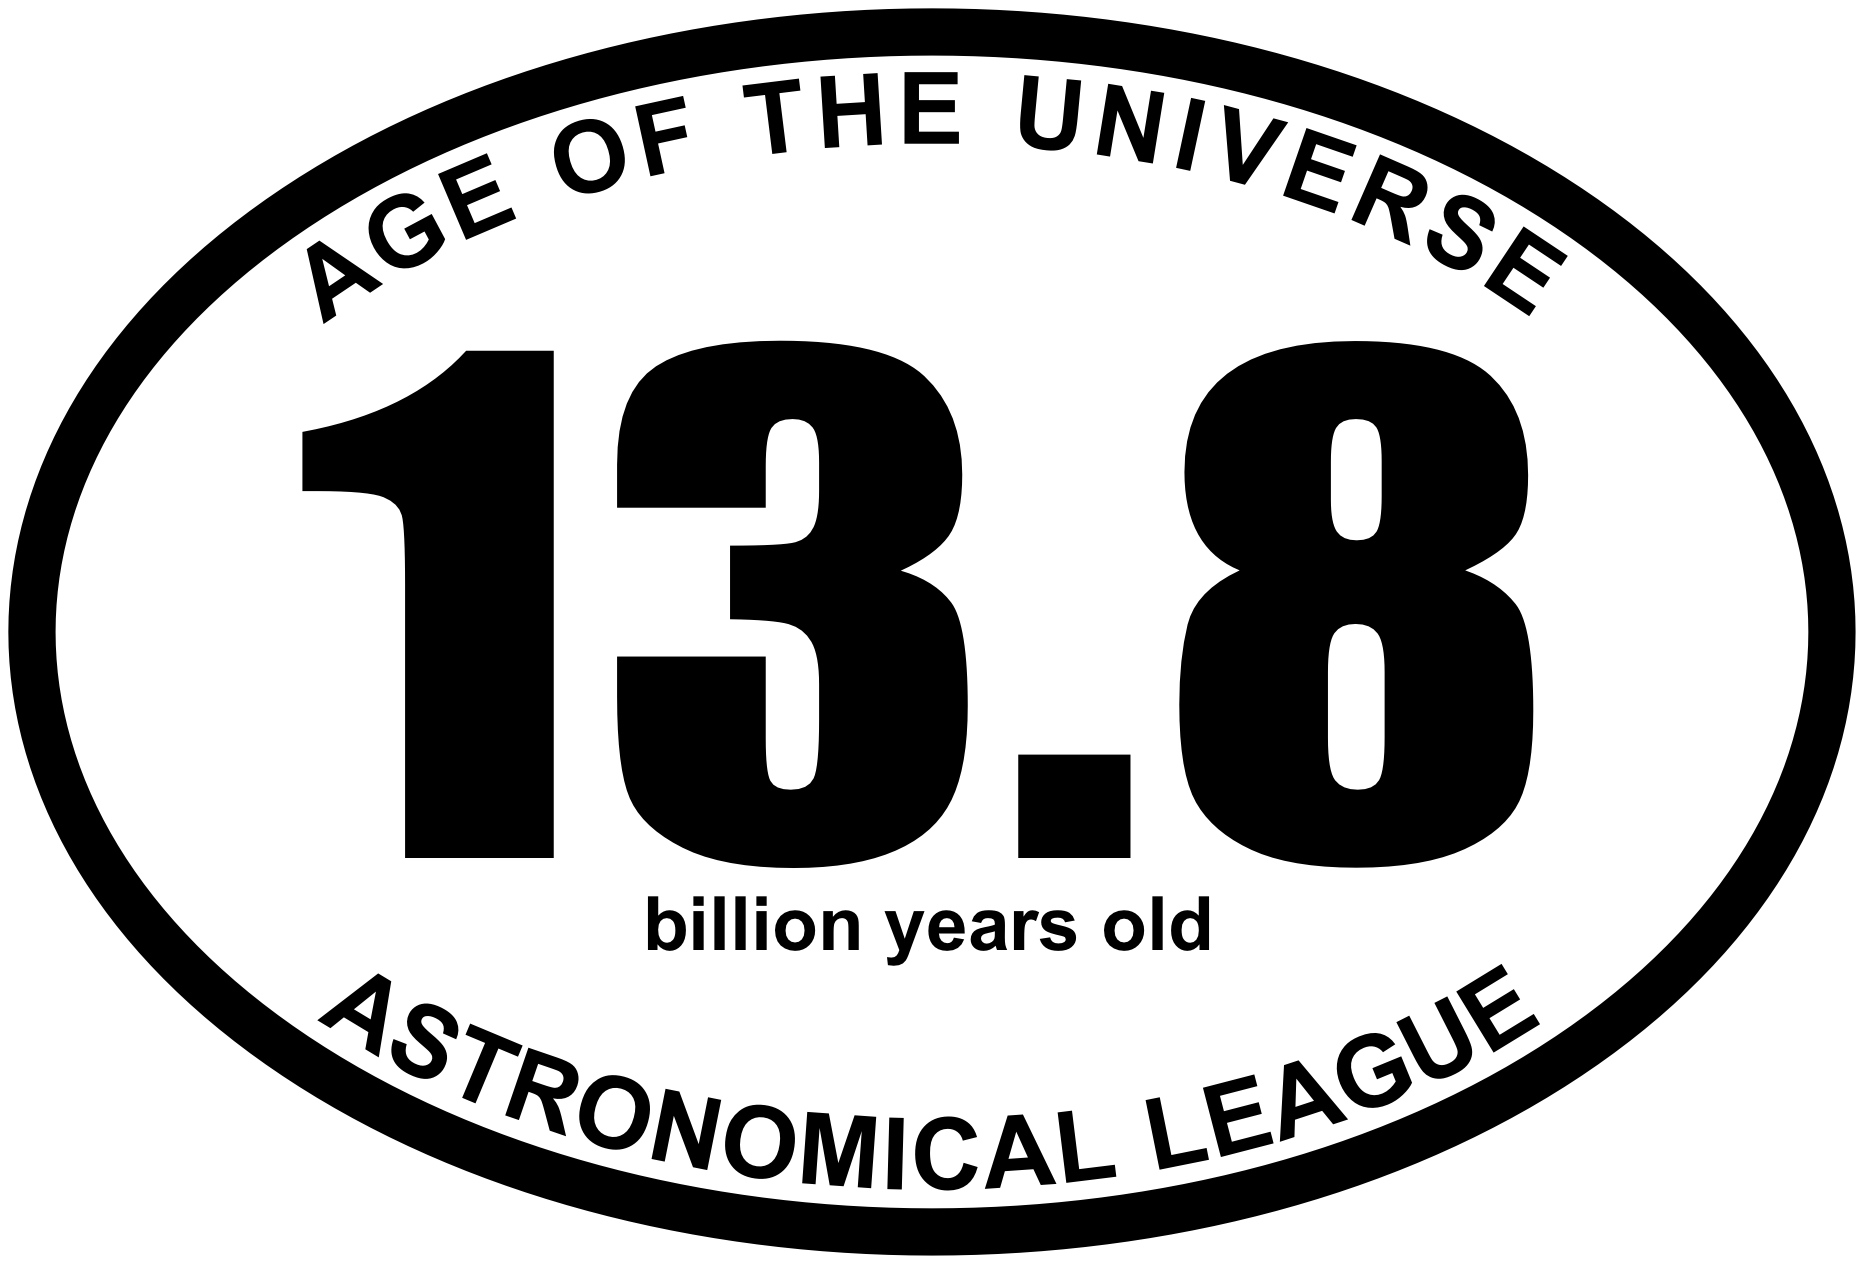 13.8 BY Age of the Universe Oval